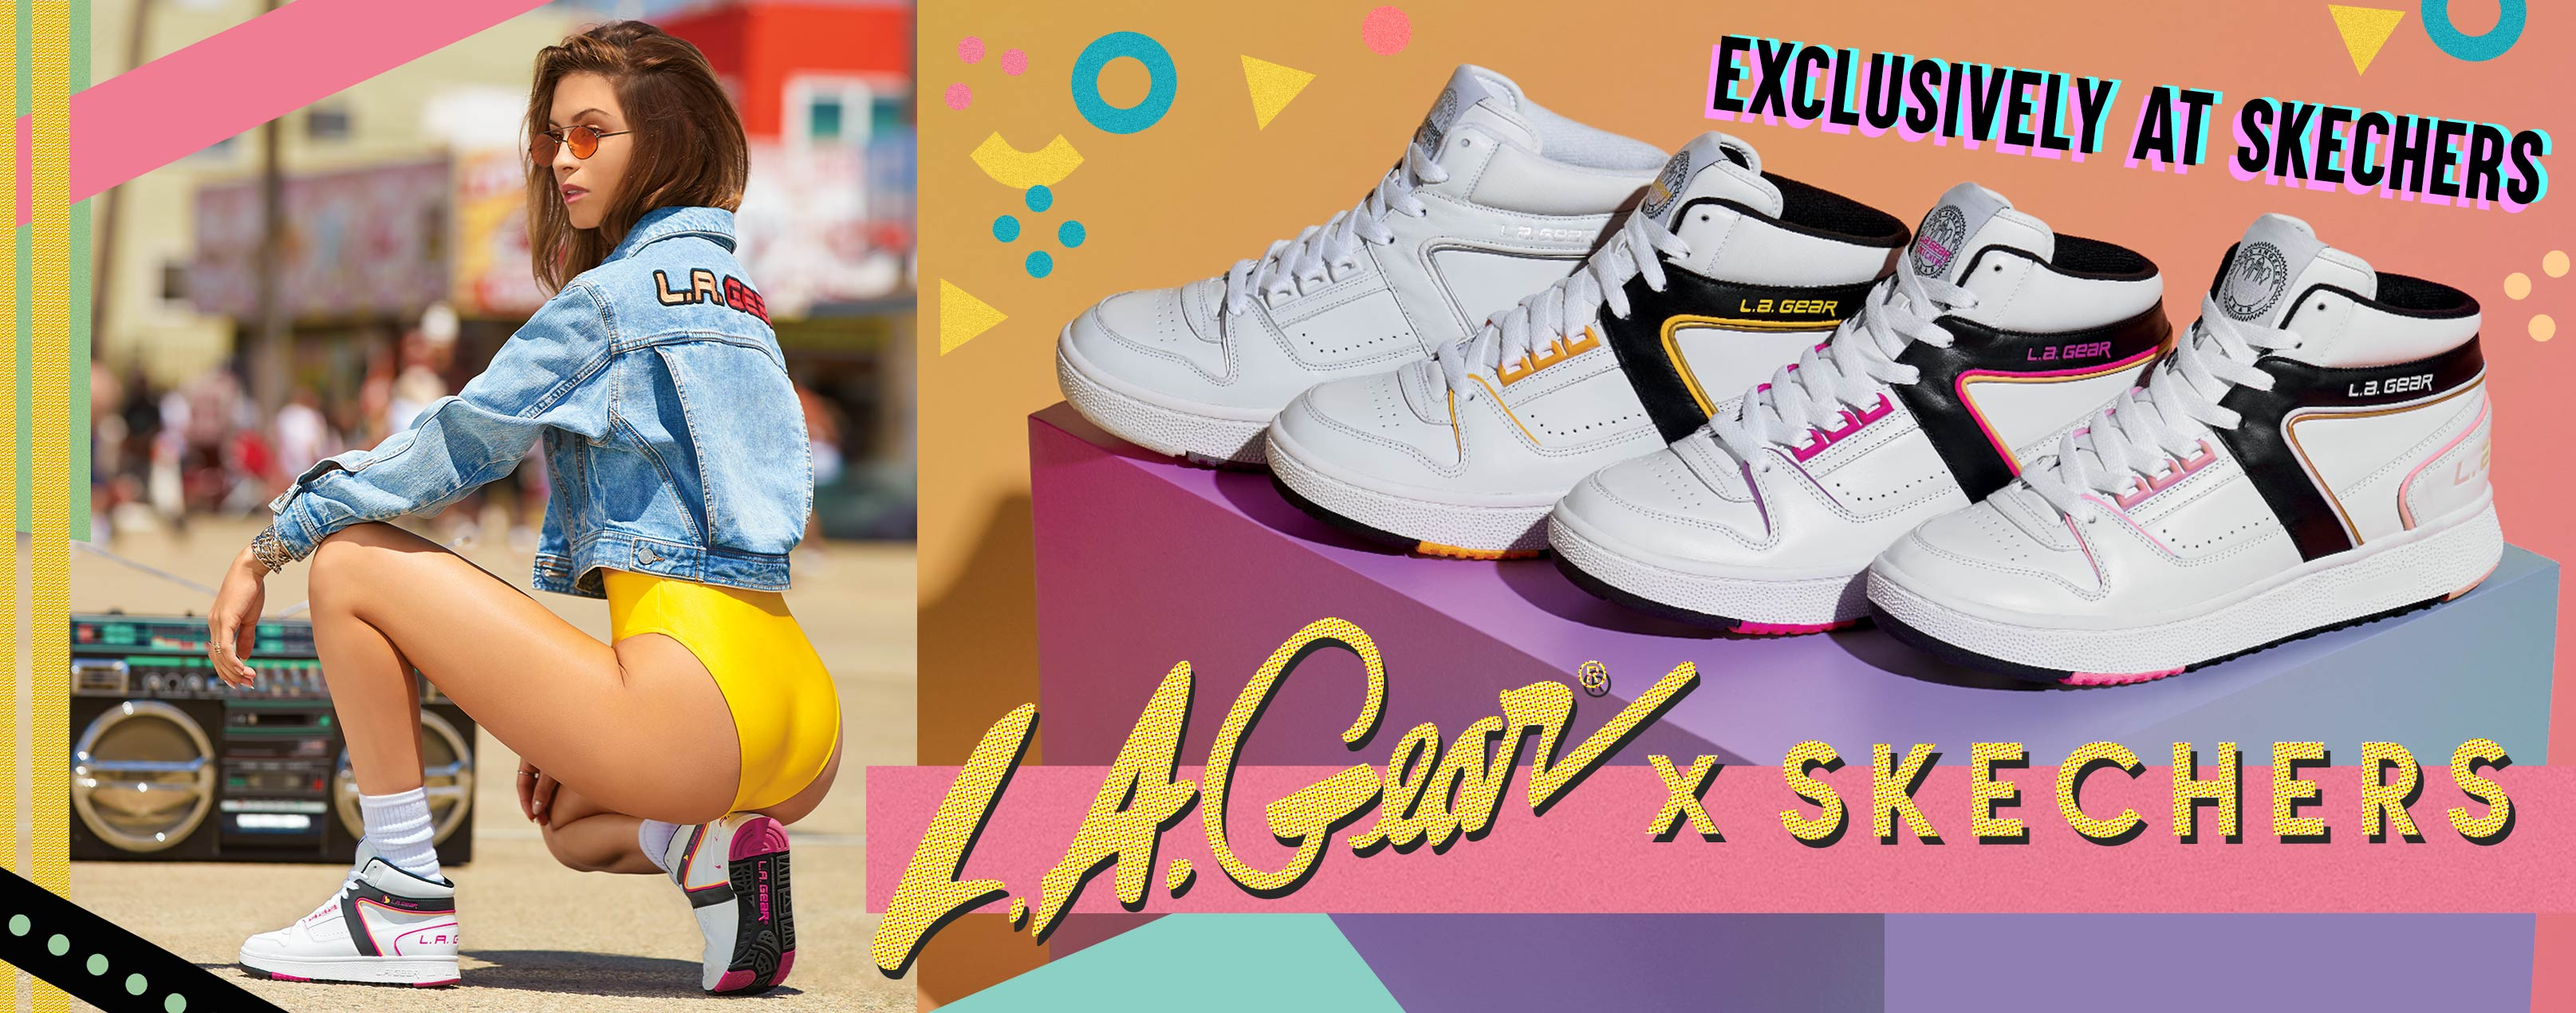 Go back to the future of athletic style and 80's court show cool with the L.A. Gear by Skechers collection.  Encore reissues of the classic basketball sneakers with Skechers Air Cooled Memory Foam comfort.